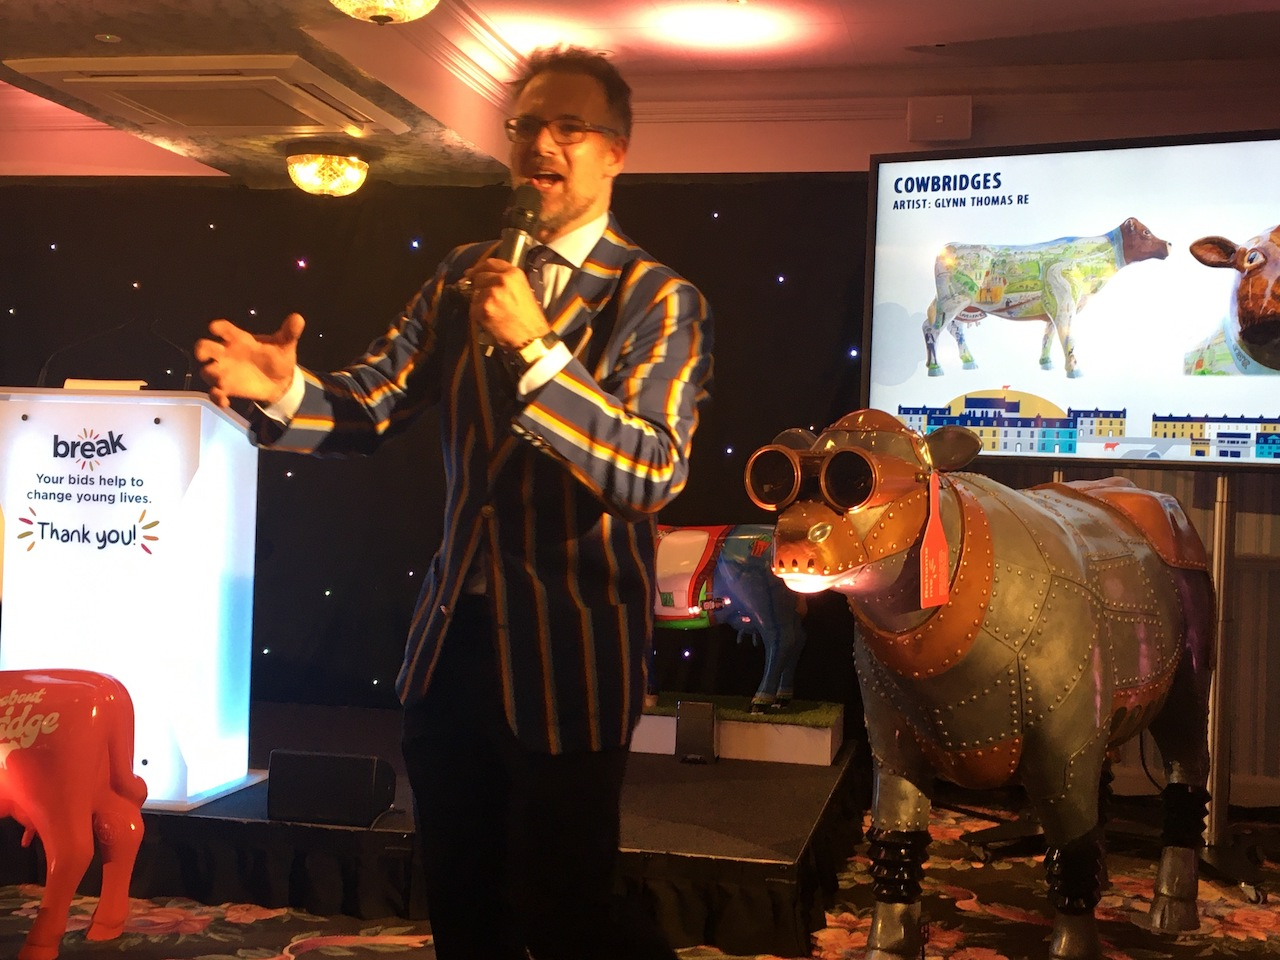 Charles Hanson in charge at the auction, with Moo Moo Tron III behind him